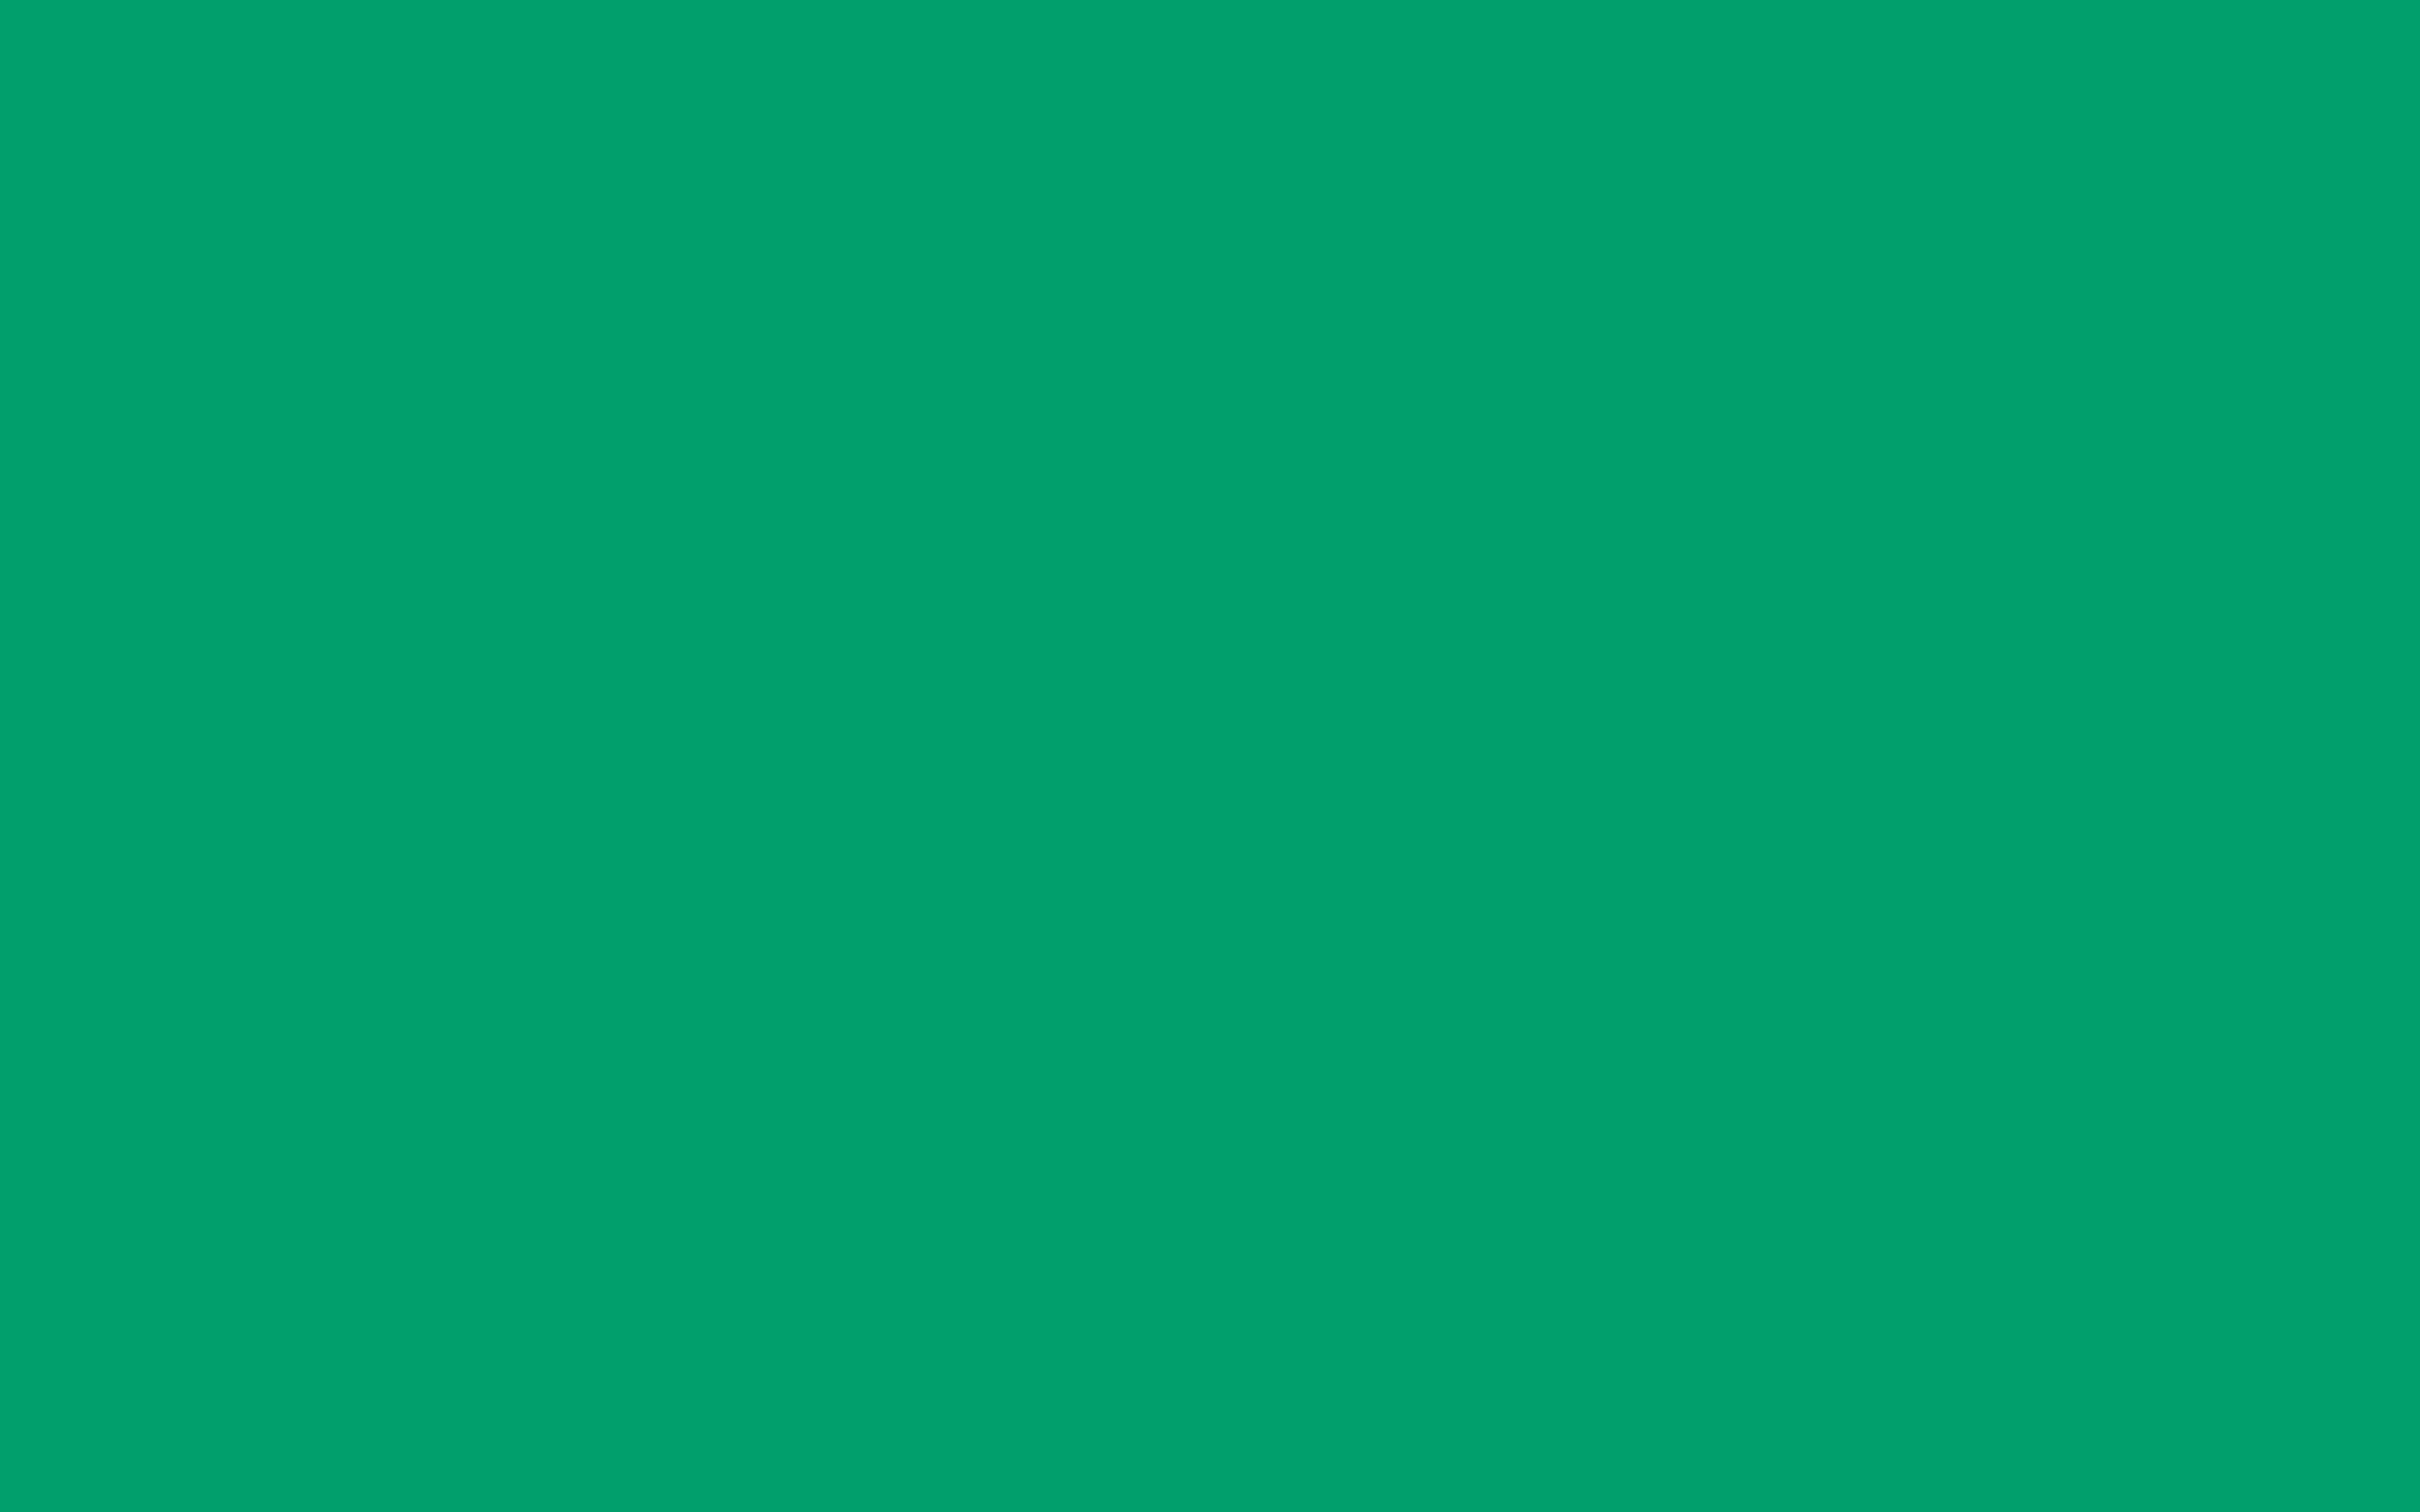 2560x1600 Green NCS Solid Color Background